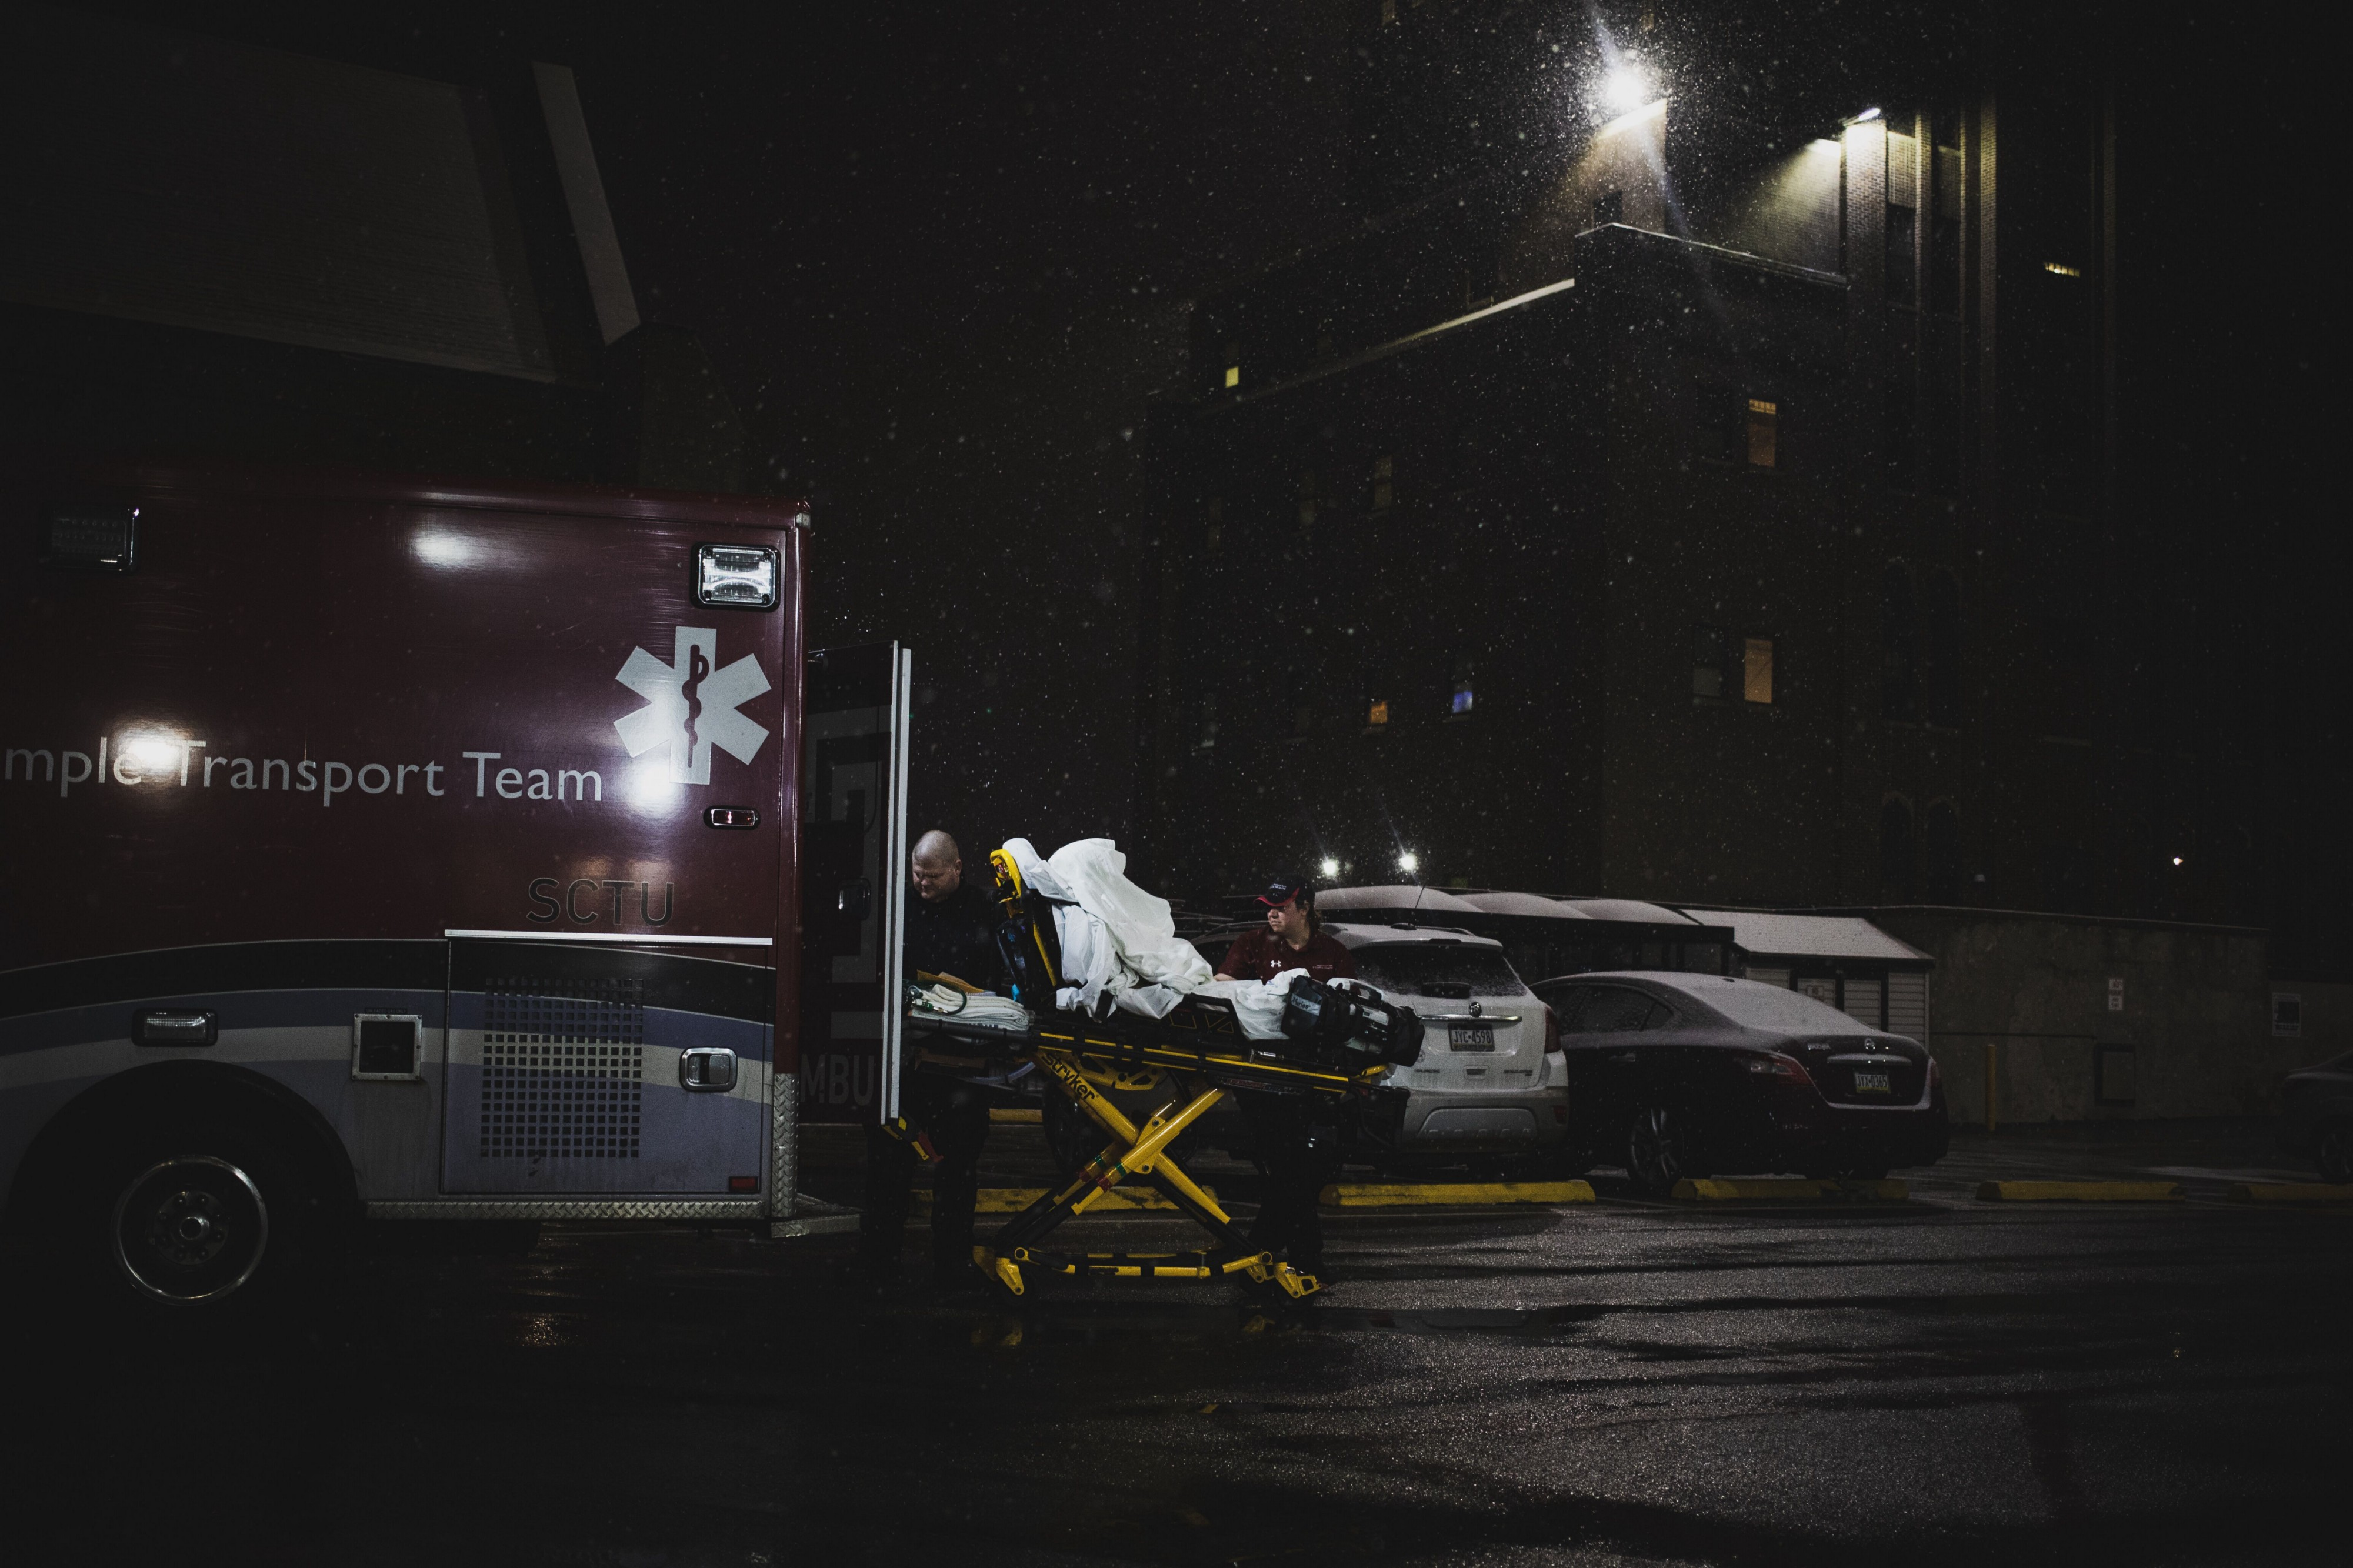 24 hours in the life of an opioid epidemic - Stories from